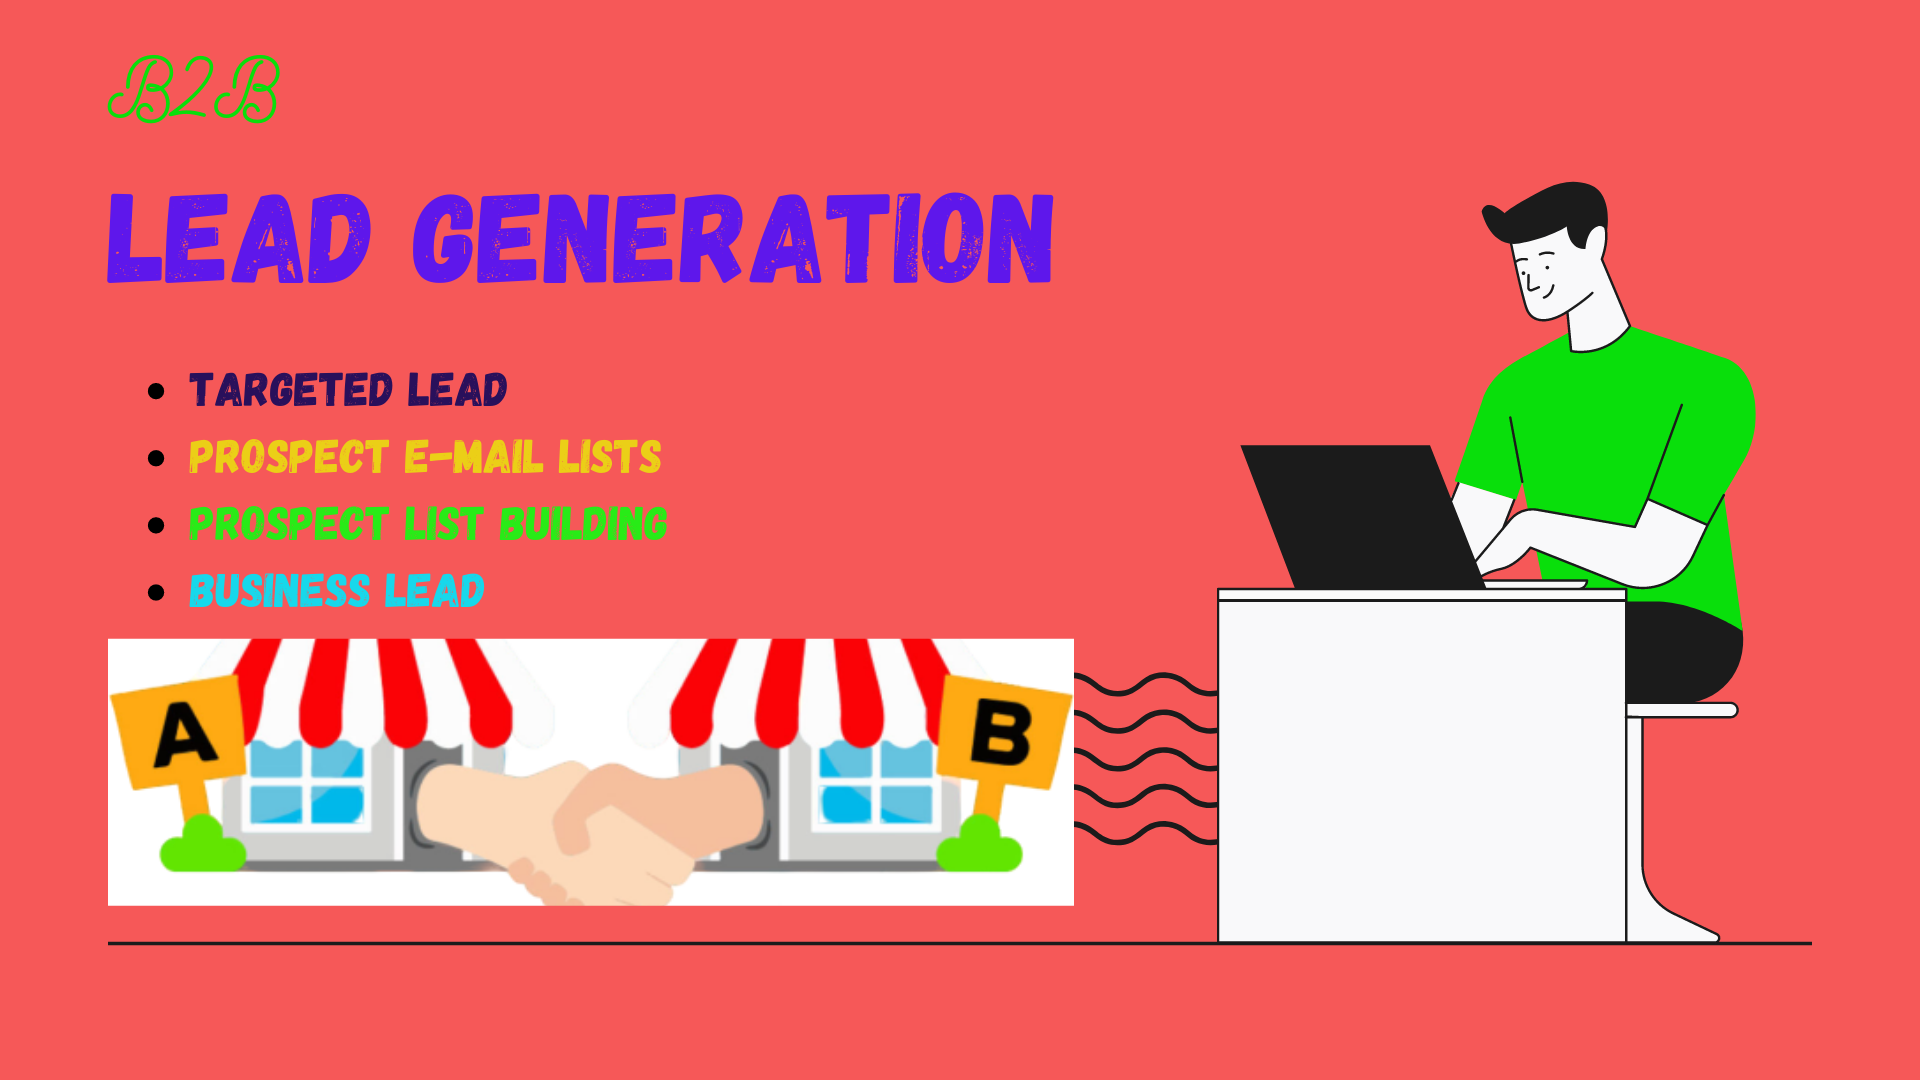 I will create 100 b2b lead generation and prospect email list building